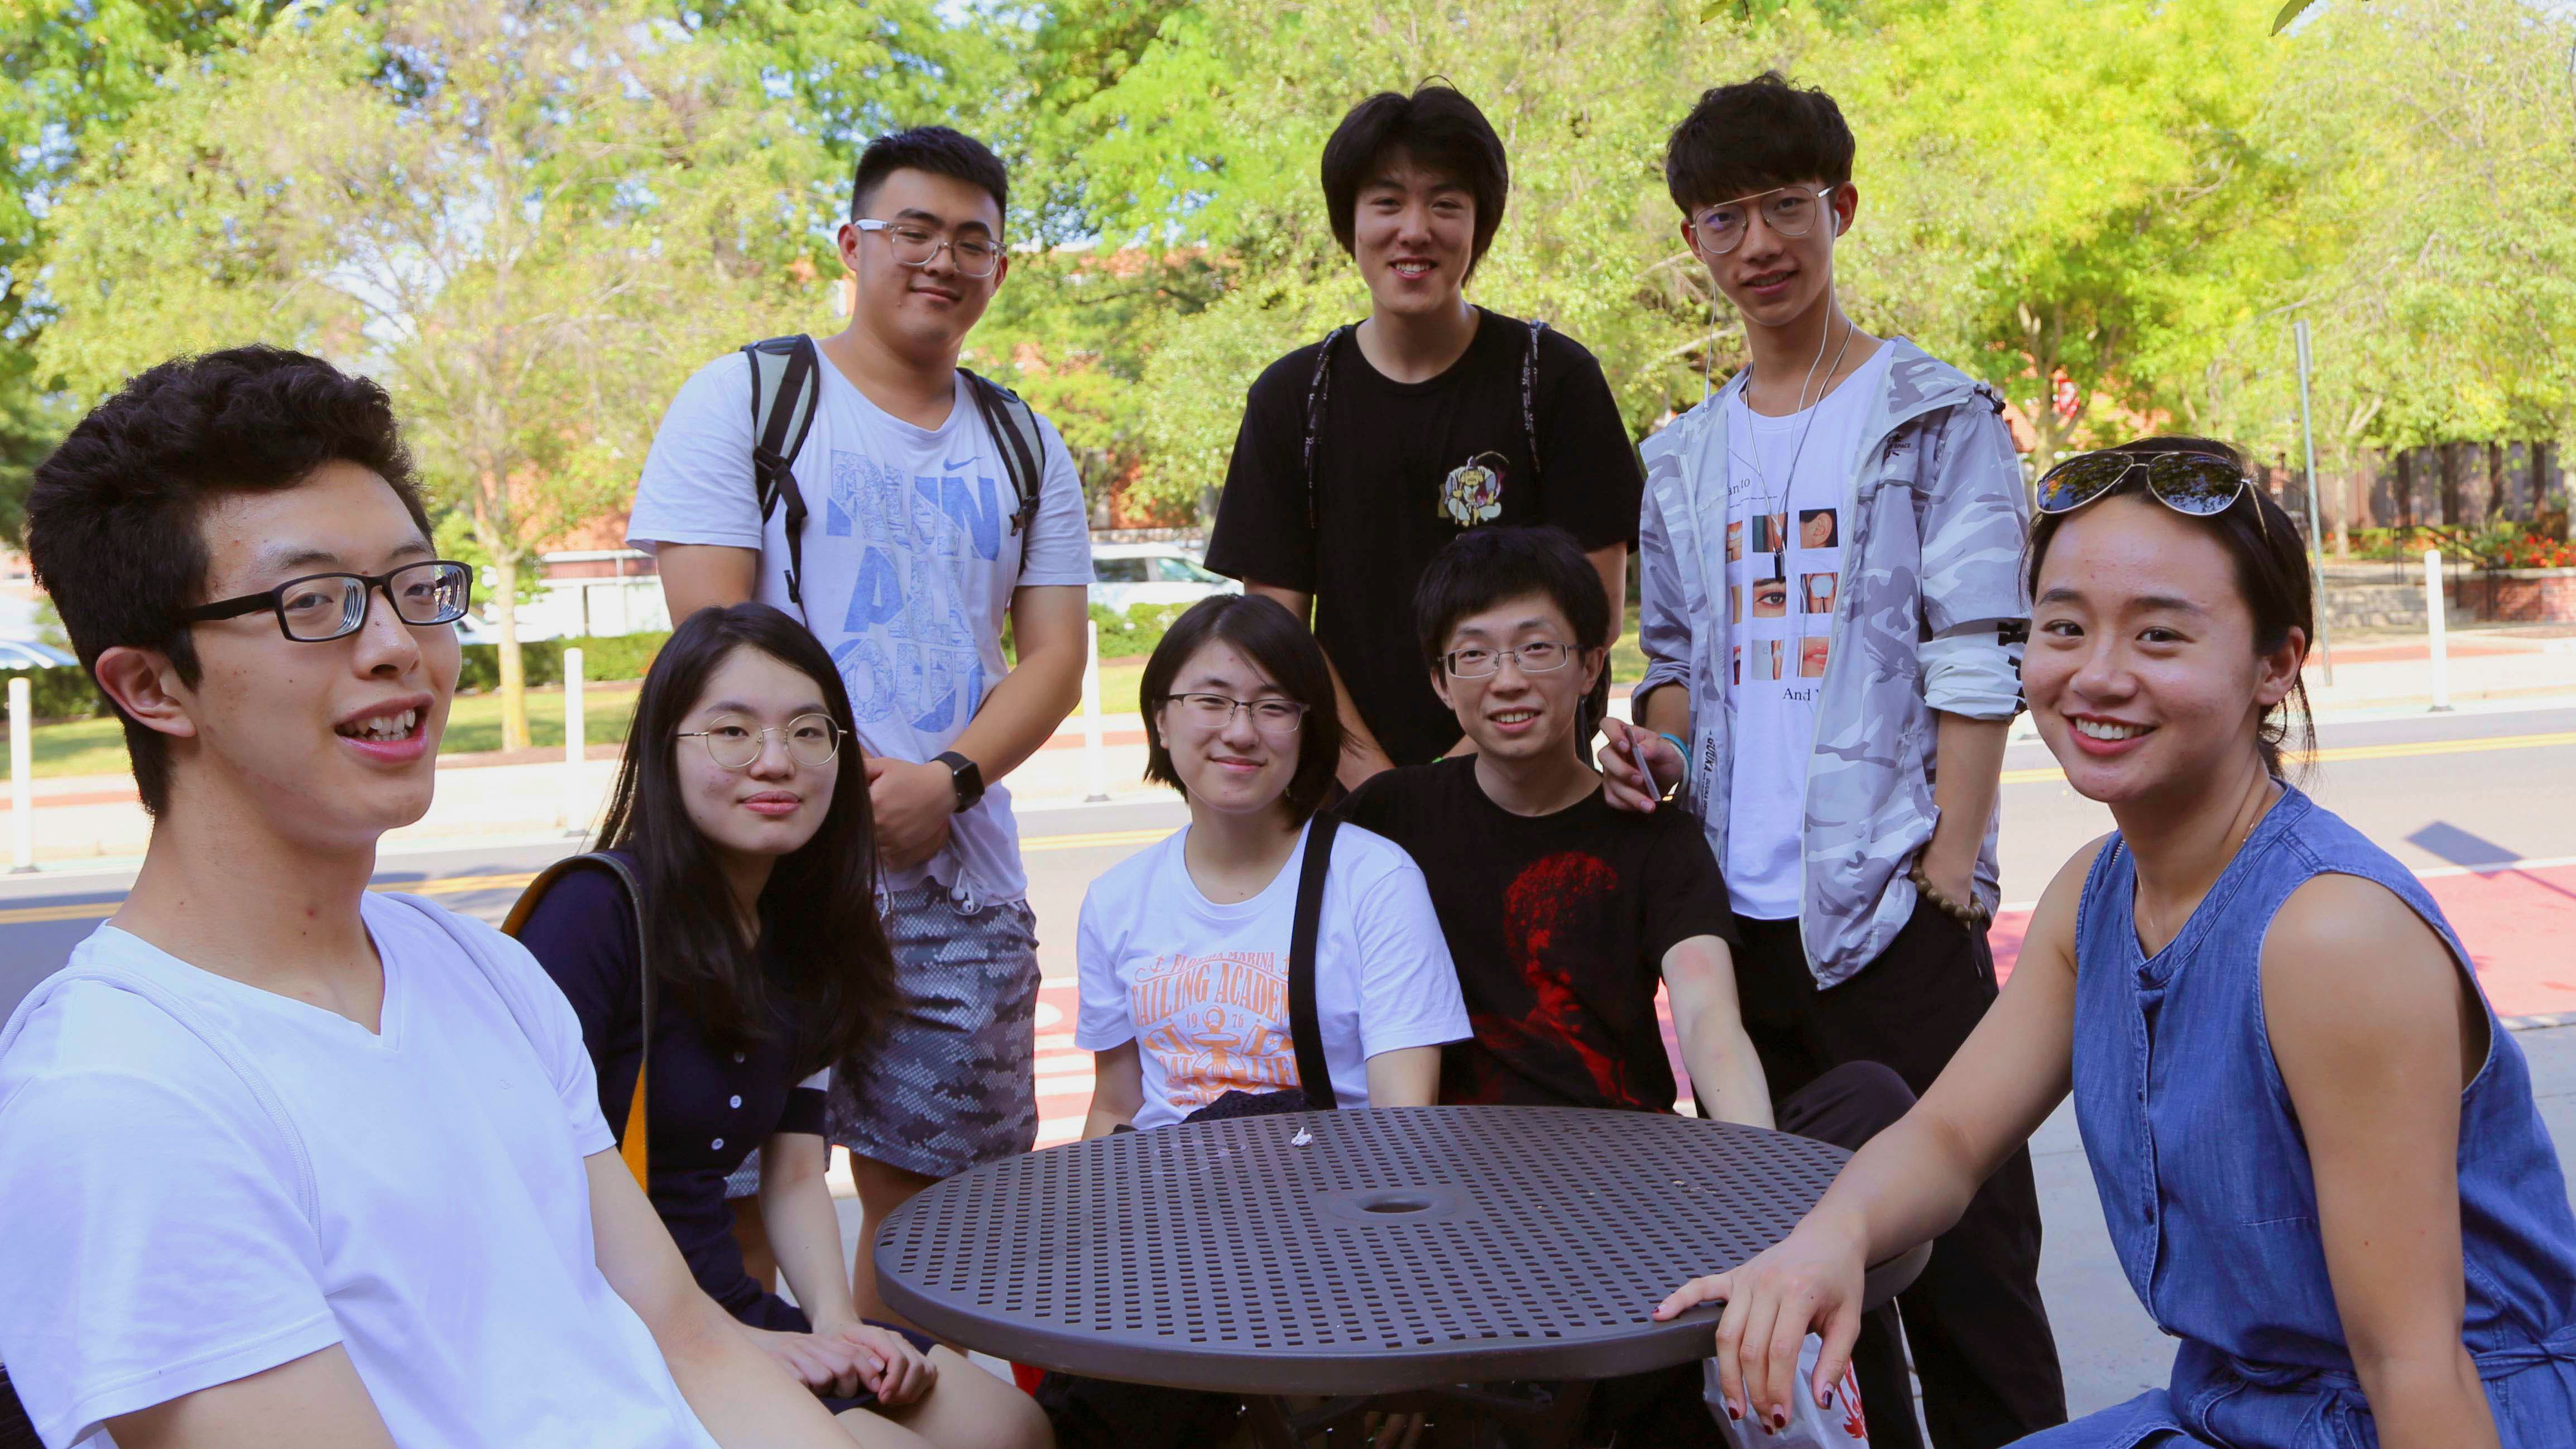 Students Around a Table Outside